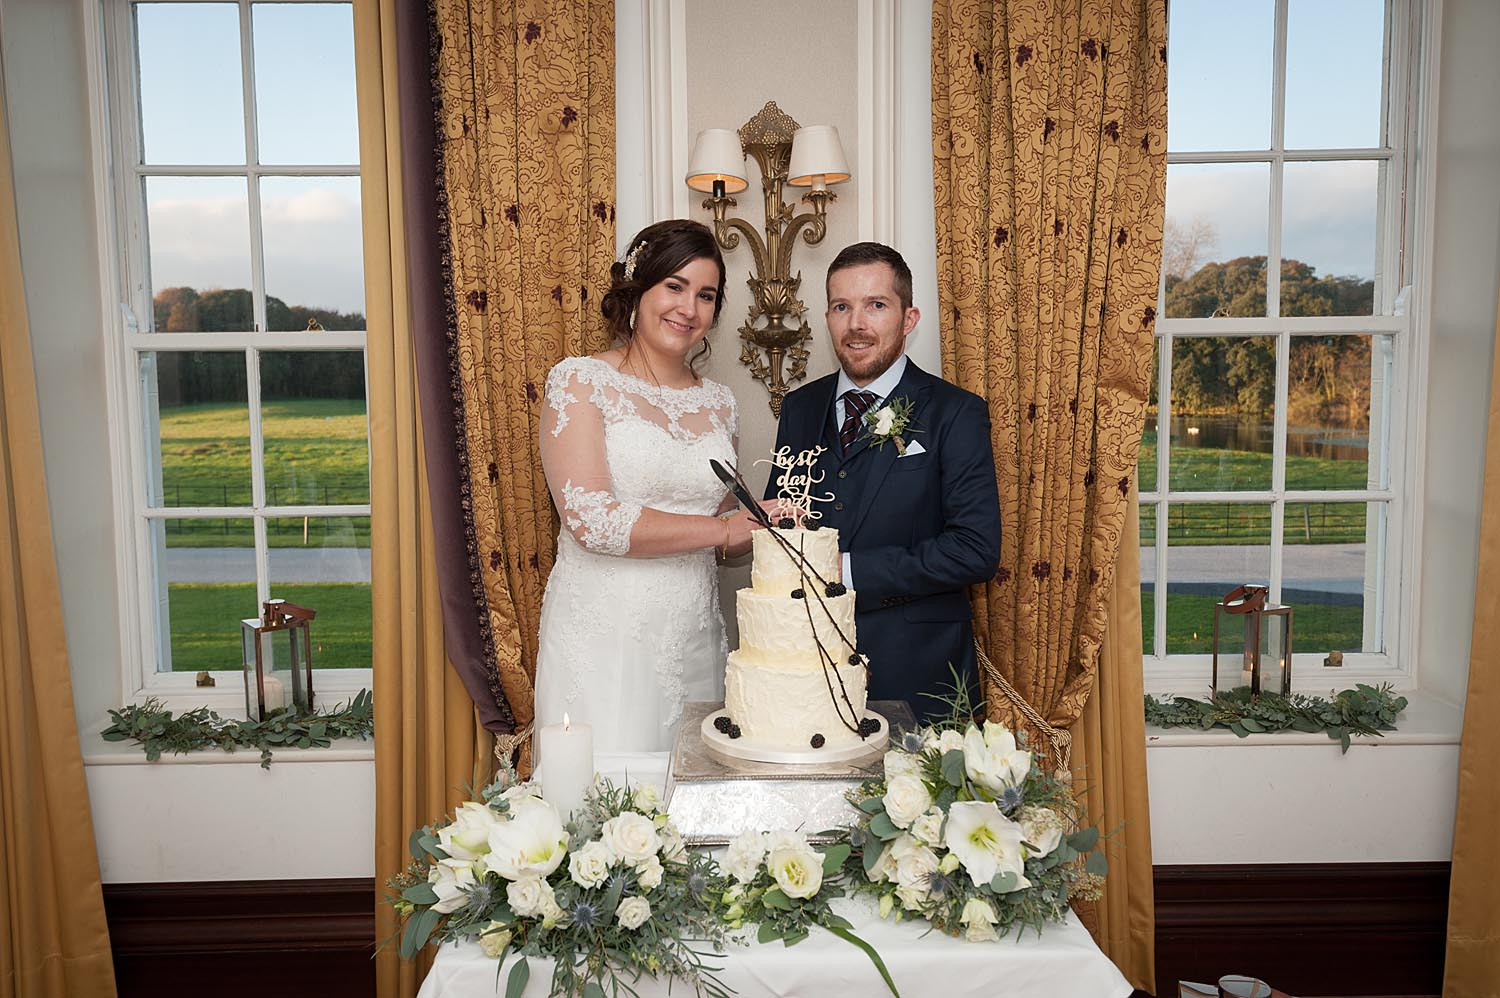 Castlemartyr Resort Wedding Photographs, Dermot Sullivan, Cork Wedding Photographer, Wedding Photography Cork, Award Winning Wedding Photography, West Cork Wedding Photography, Cork Wedding Photos, Clonakilty Wedding Photographer, Best Prices, Packages, Pictures, Best Wedding Photos,